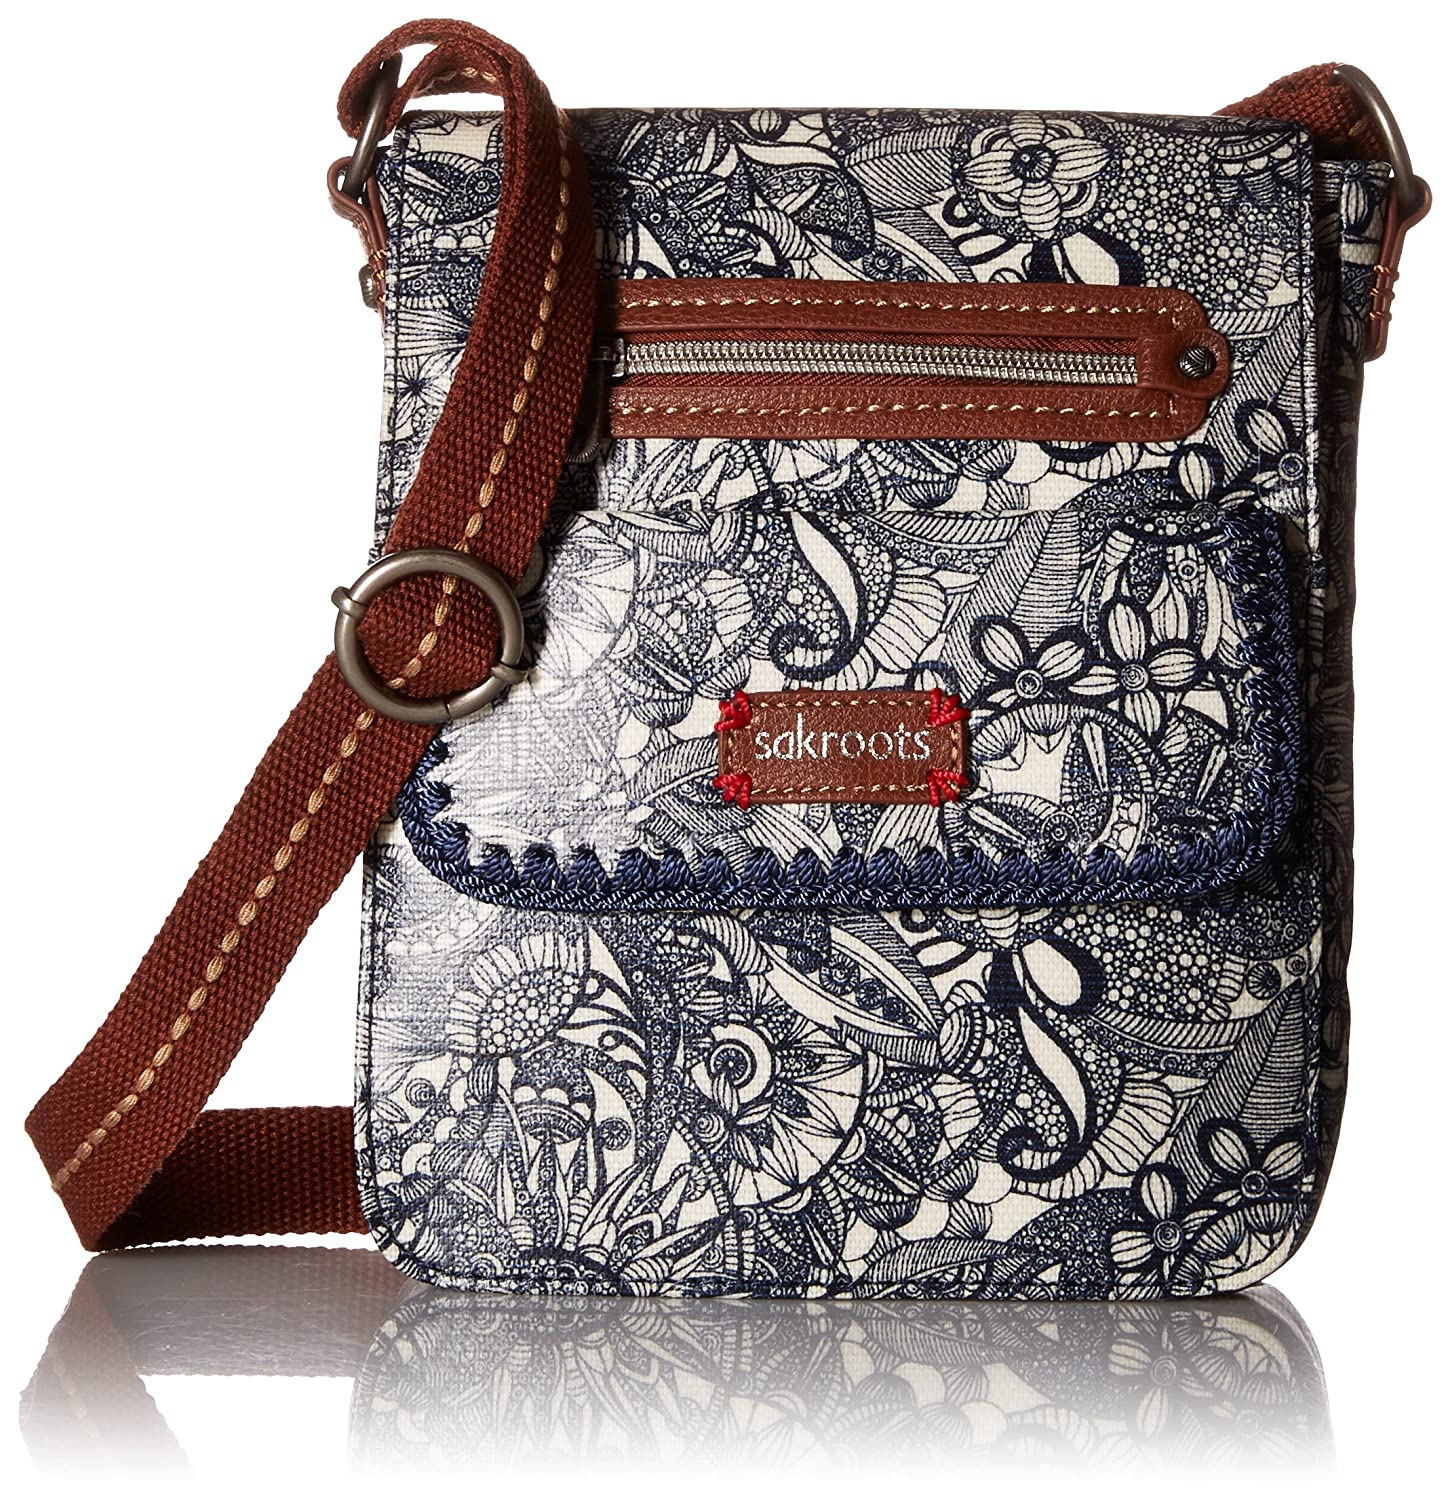 Sakroots Small Flap Messenger